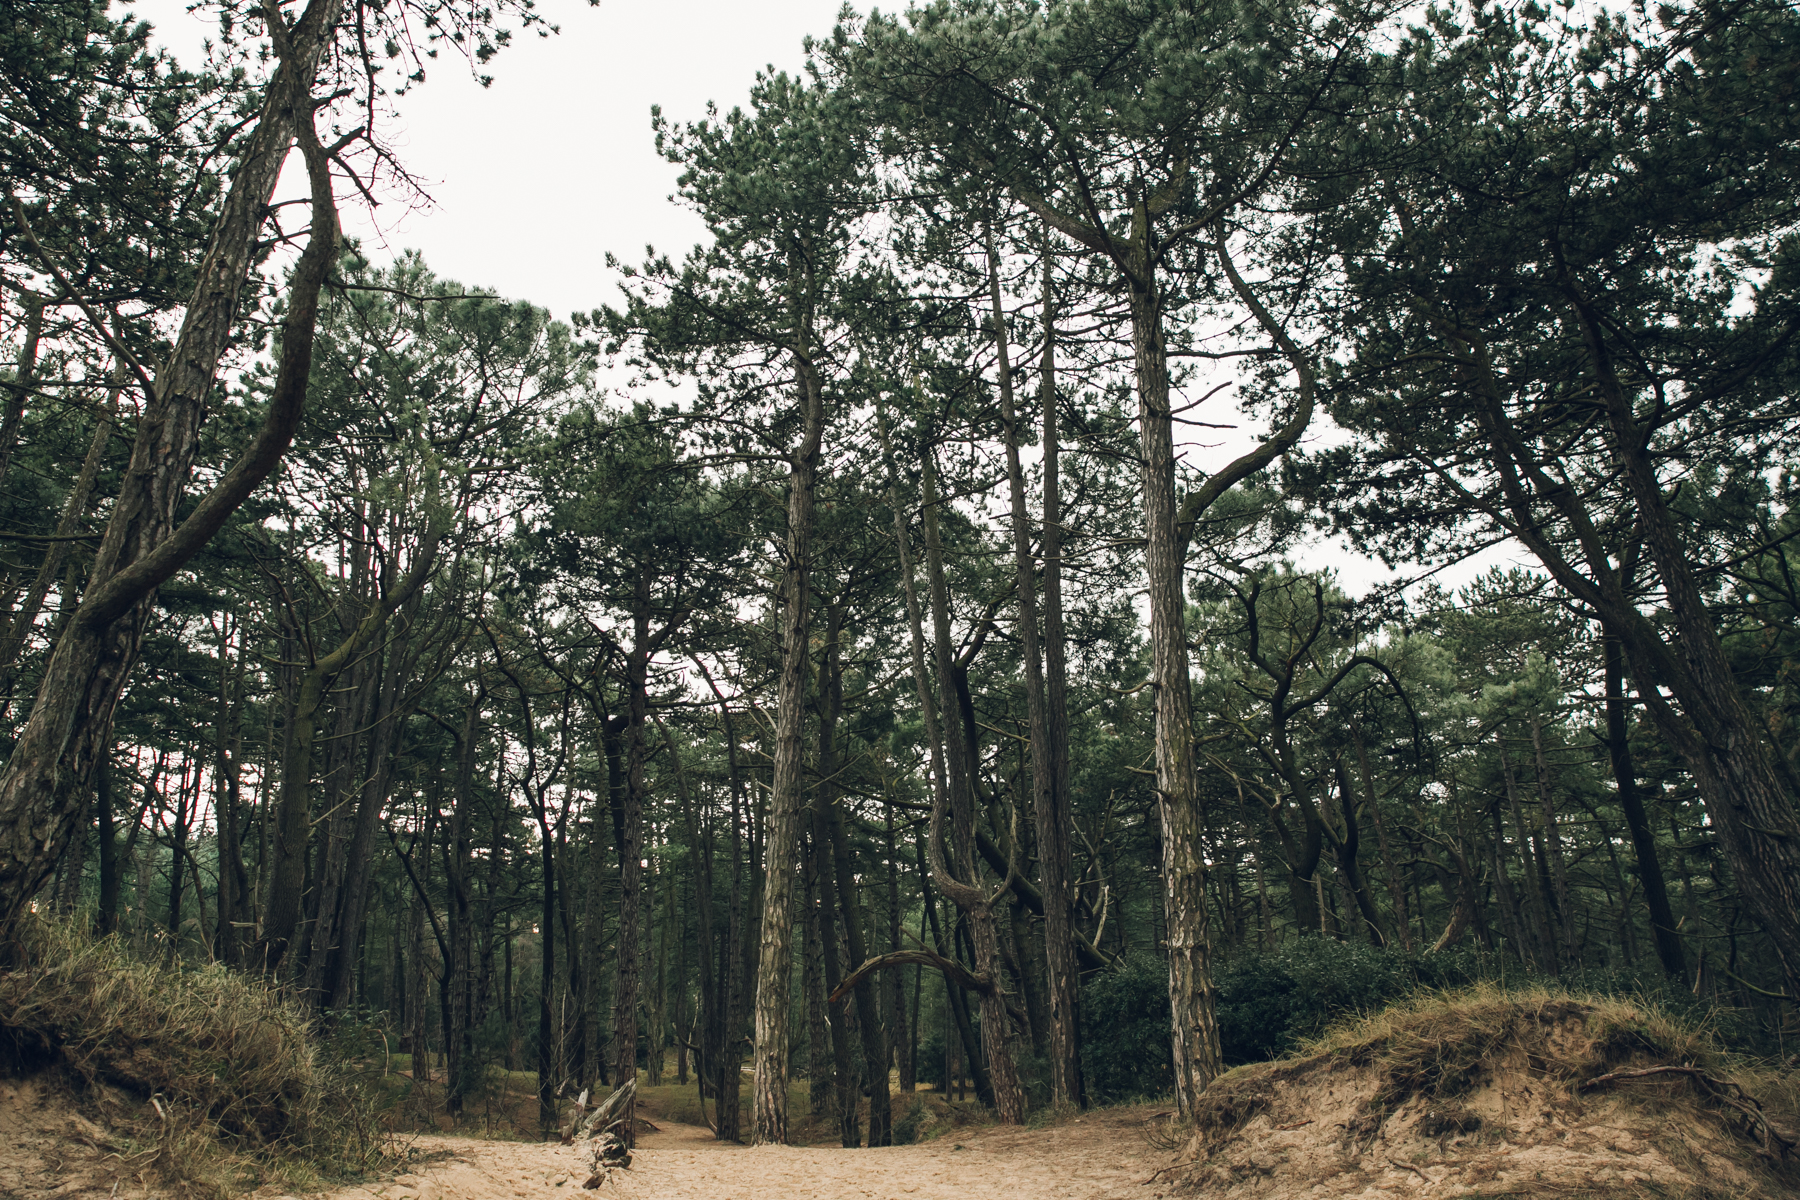 The pine woods at Wells-next-the-sea on the North Norfolk coast.